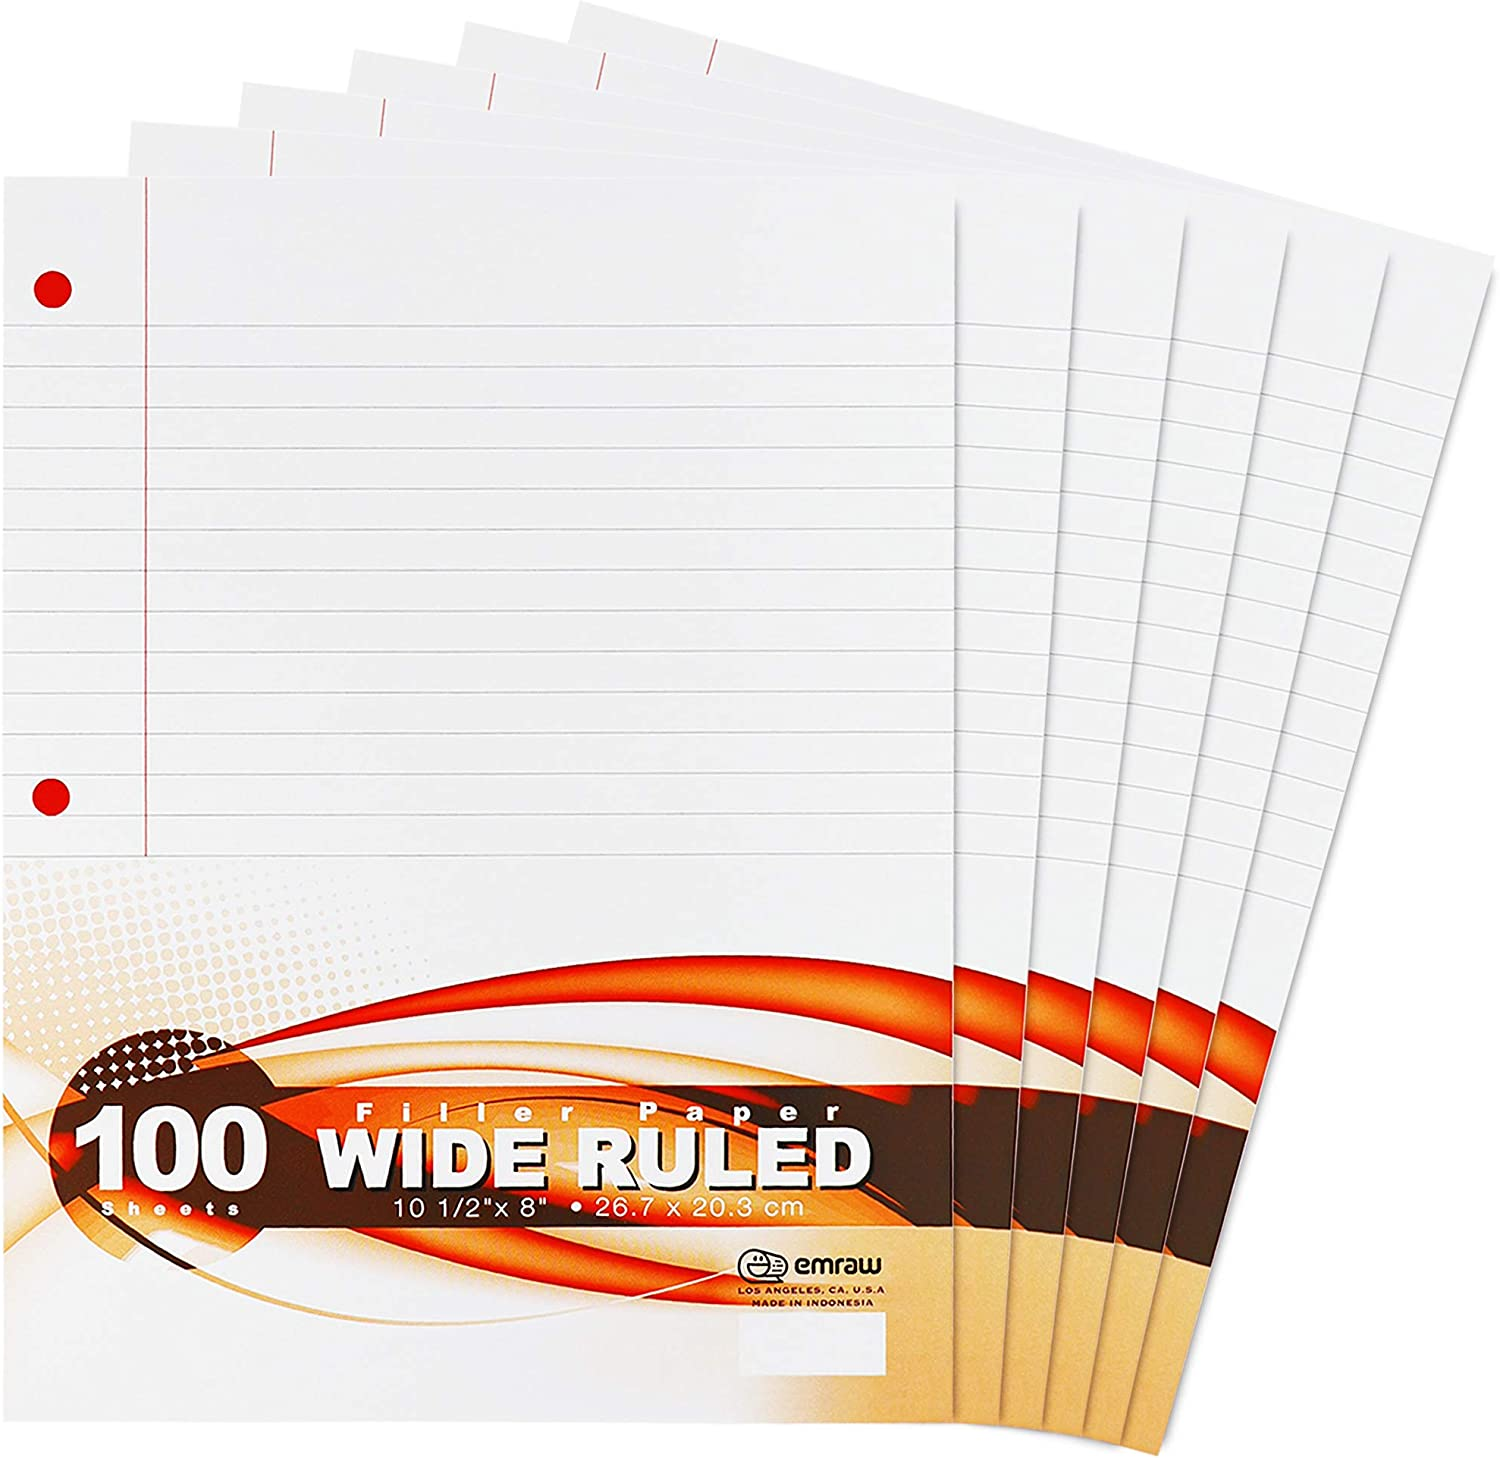 Total 600 Sheets 100 Sheets Per Pack Perfect for Normal Everyday Notetaking 8x10.5 x 0.32 Inch 6 Pack Emraw Wide Ruled Filler Paper